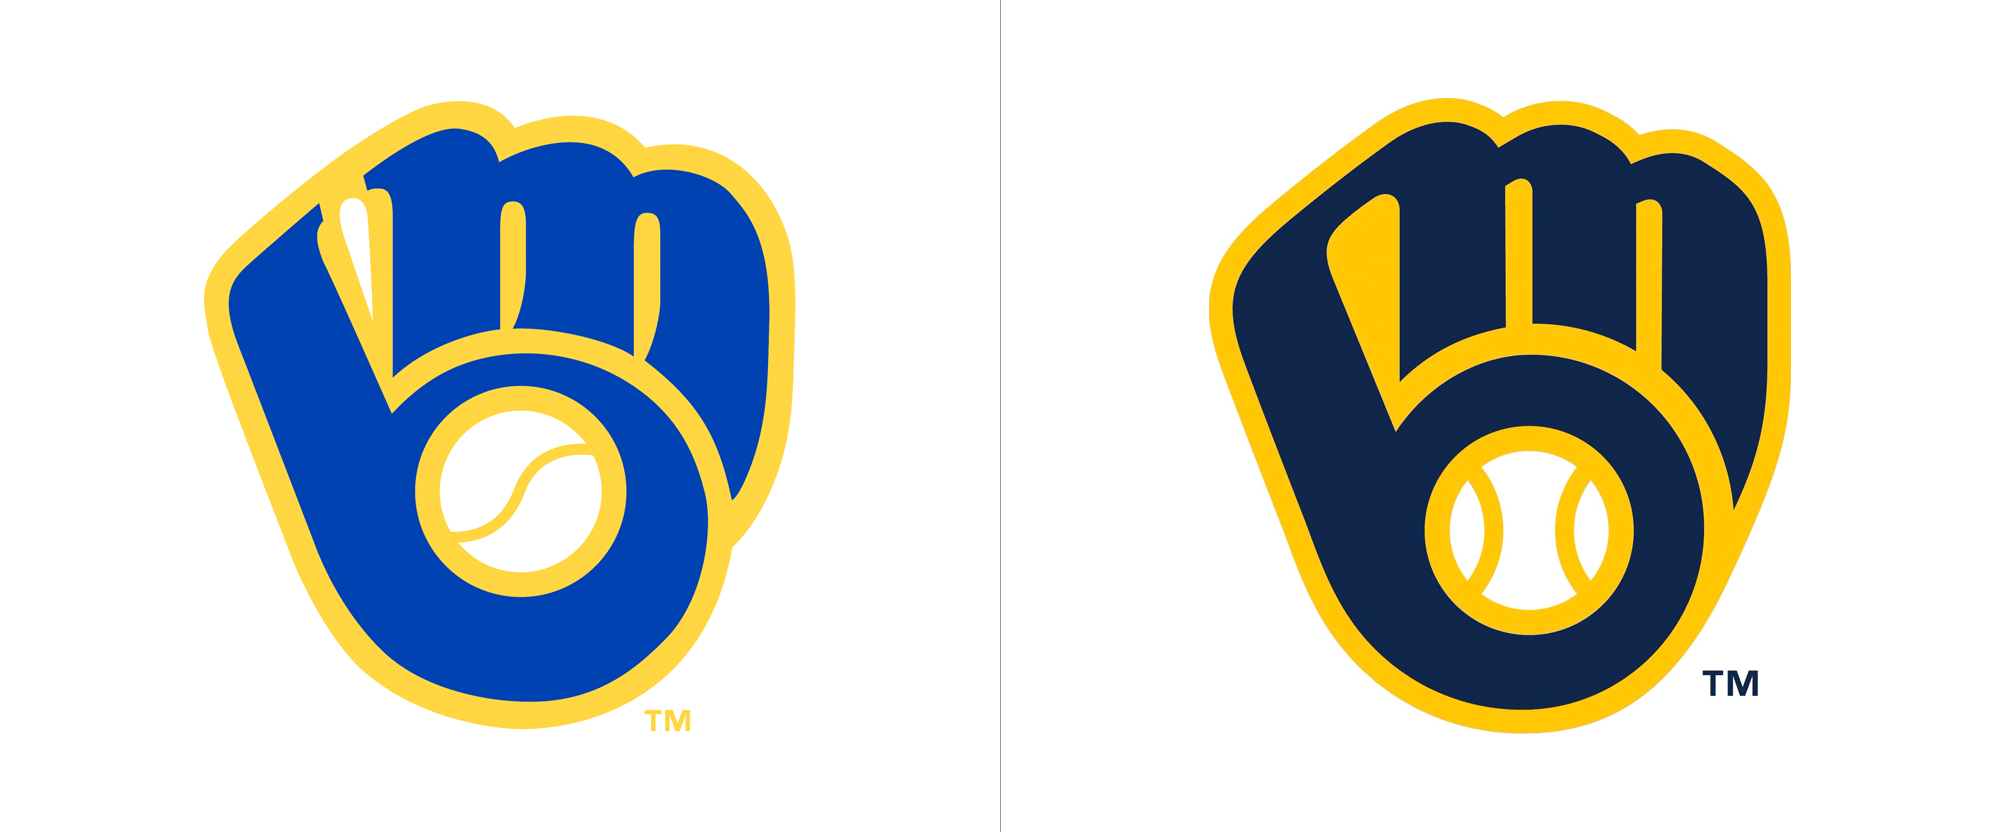 Brand New: New Logos and Uniforms for Milwaukee Brewers by Rare.